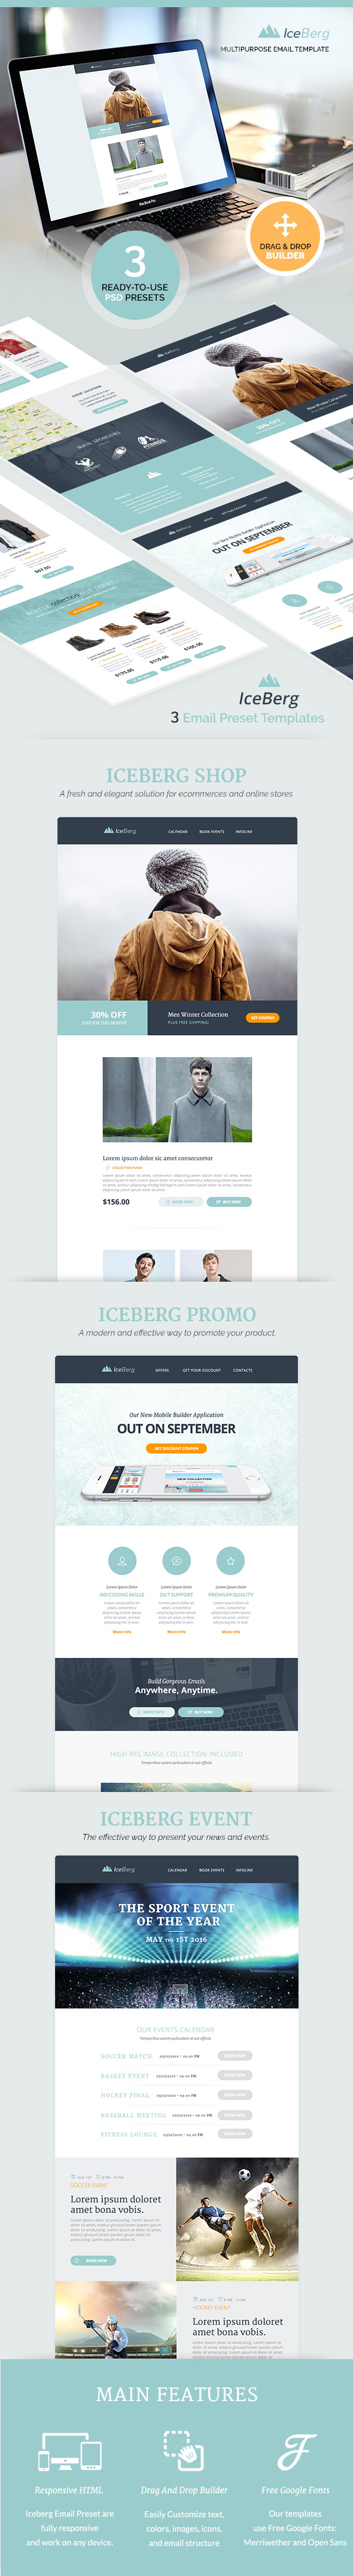 Iceberg Responsive Email Templates Builder Marketing - Buy email templates